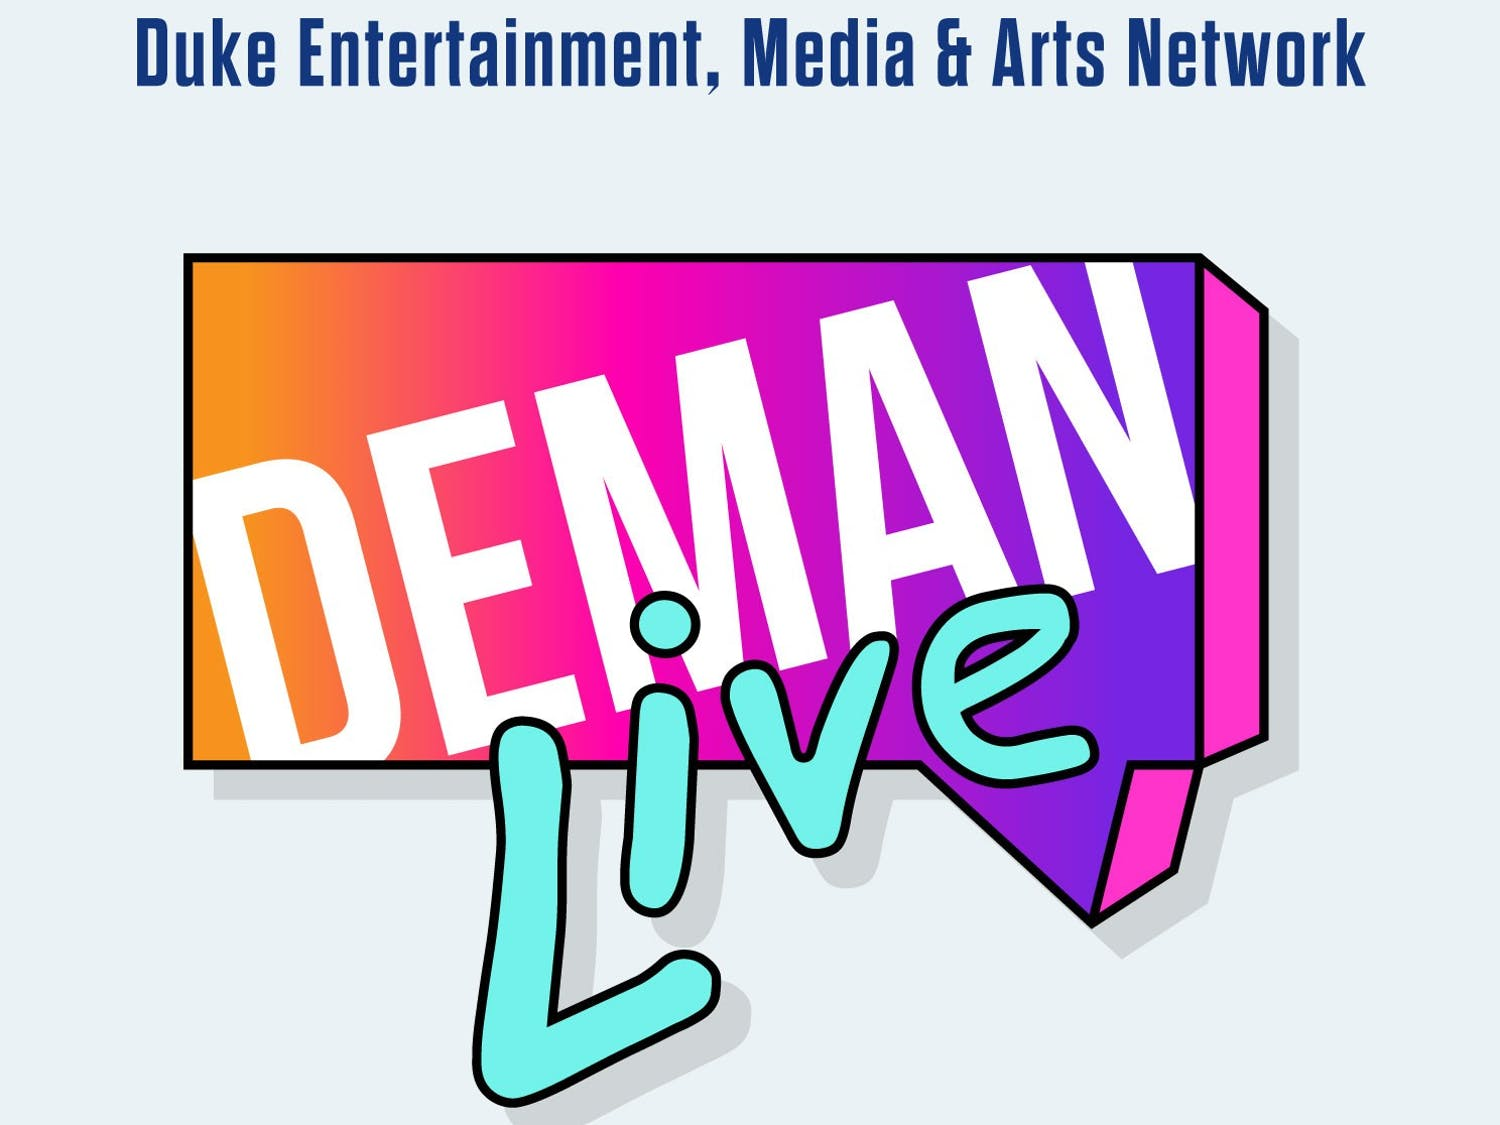 DEMAN was founded in 2009 to help students network and find jobs or internships in arts-related fields.